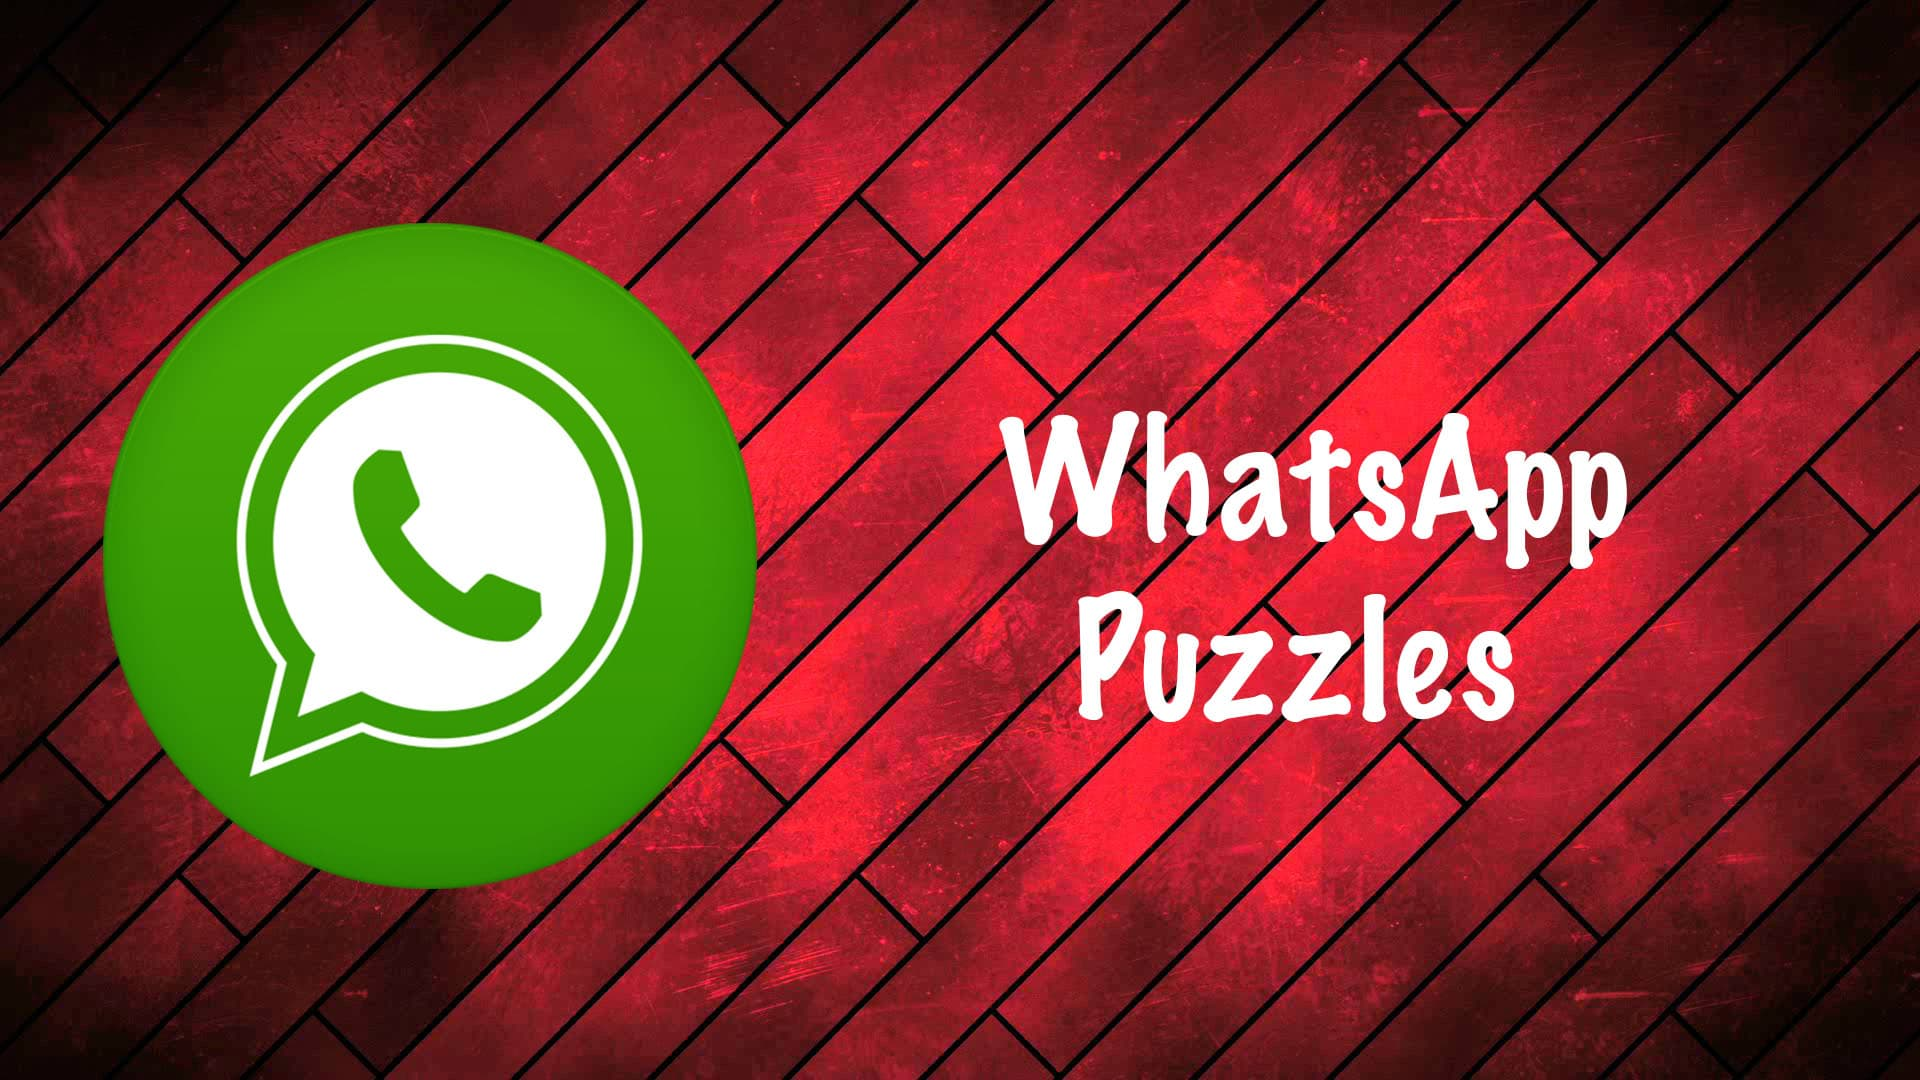 whatsapp-puzzles